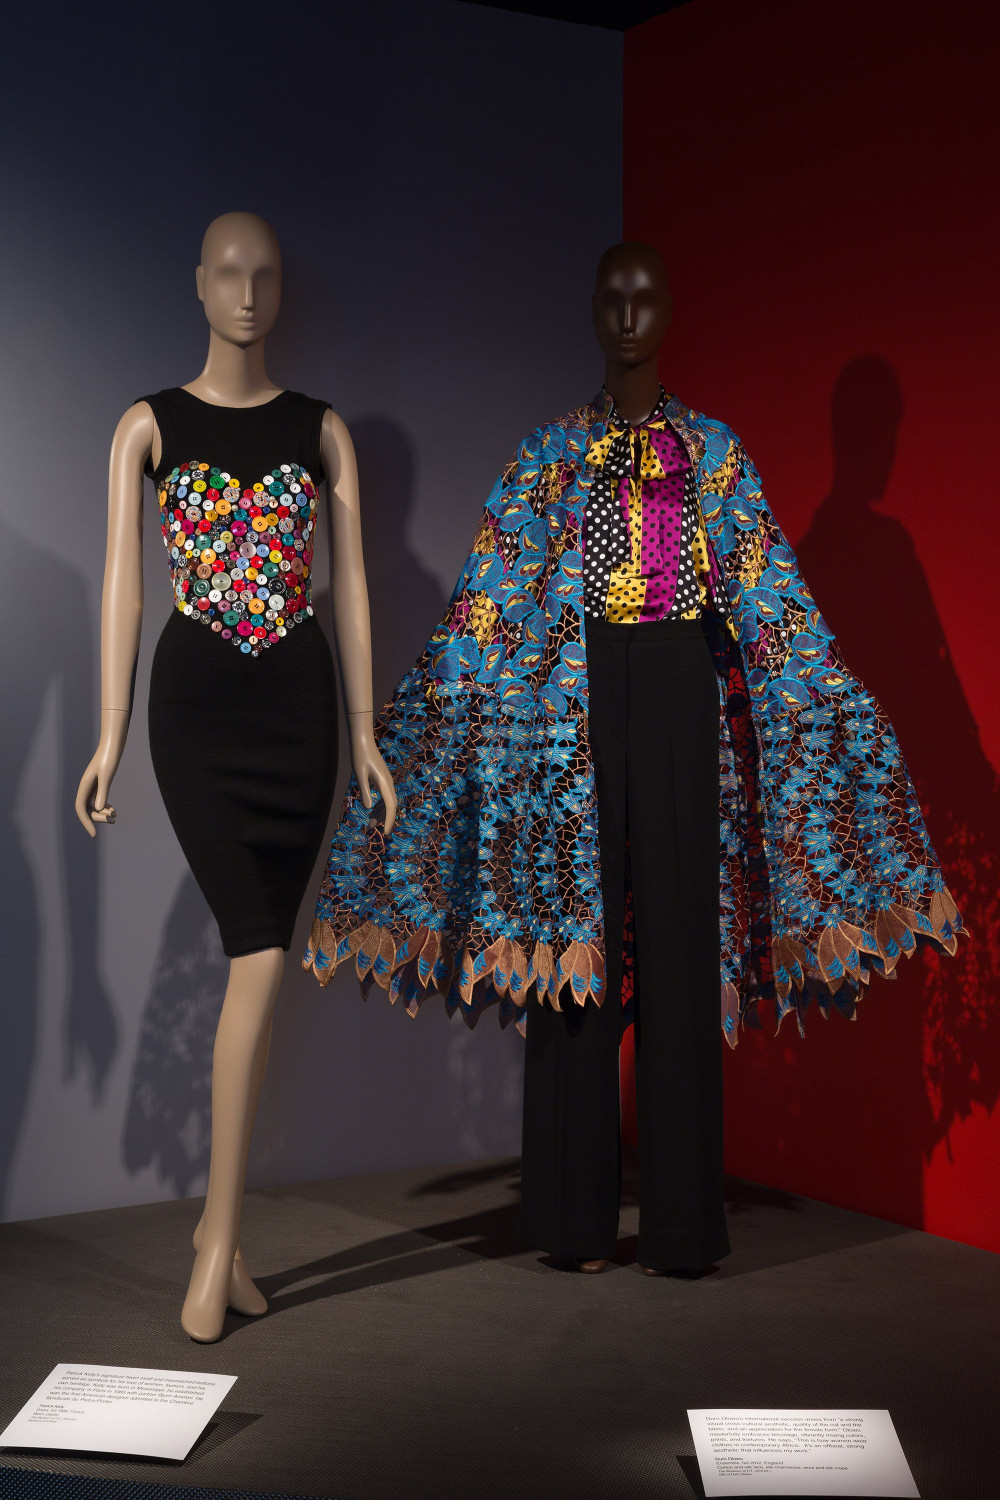 Photo credits (from left to right): Patrick Kelly, dress, fall/winter 1986-1987, France. Museum purchase. Duro Olowu, ensemble, fall 2012, England. Gift of Duro Olowu.